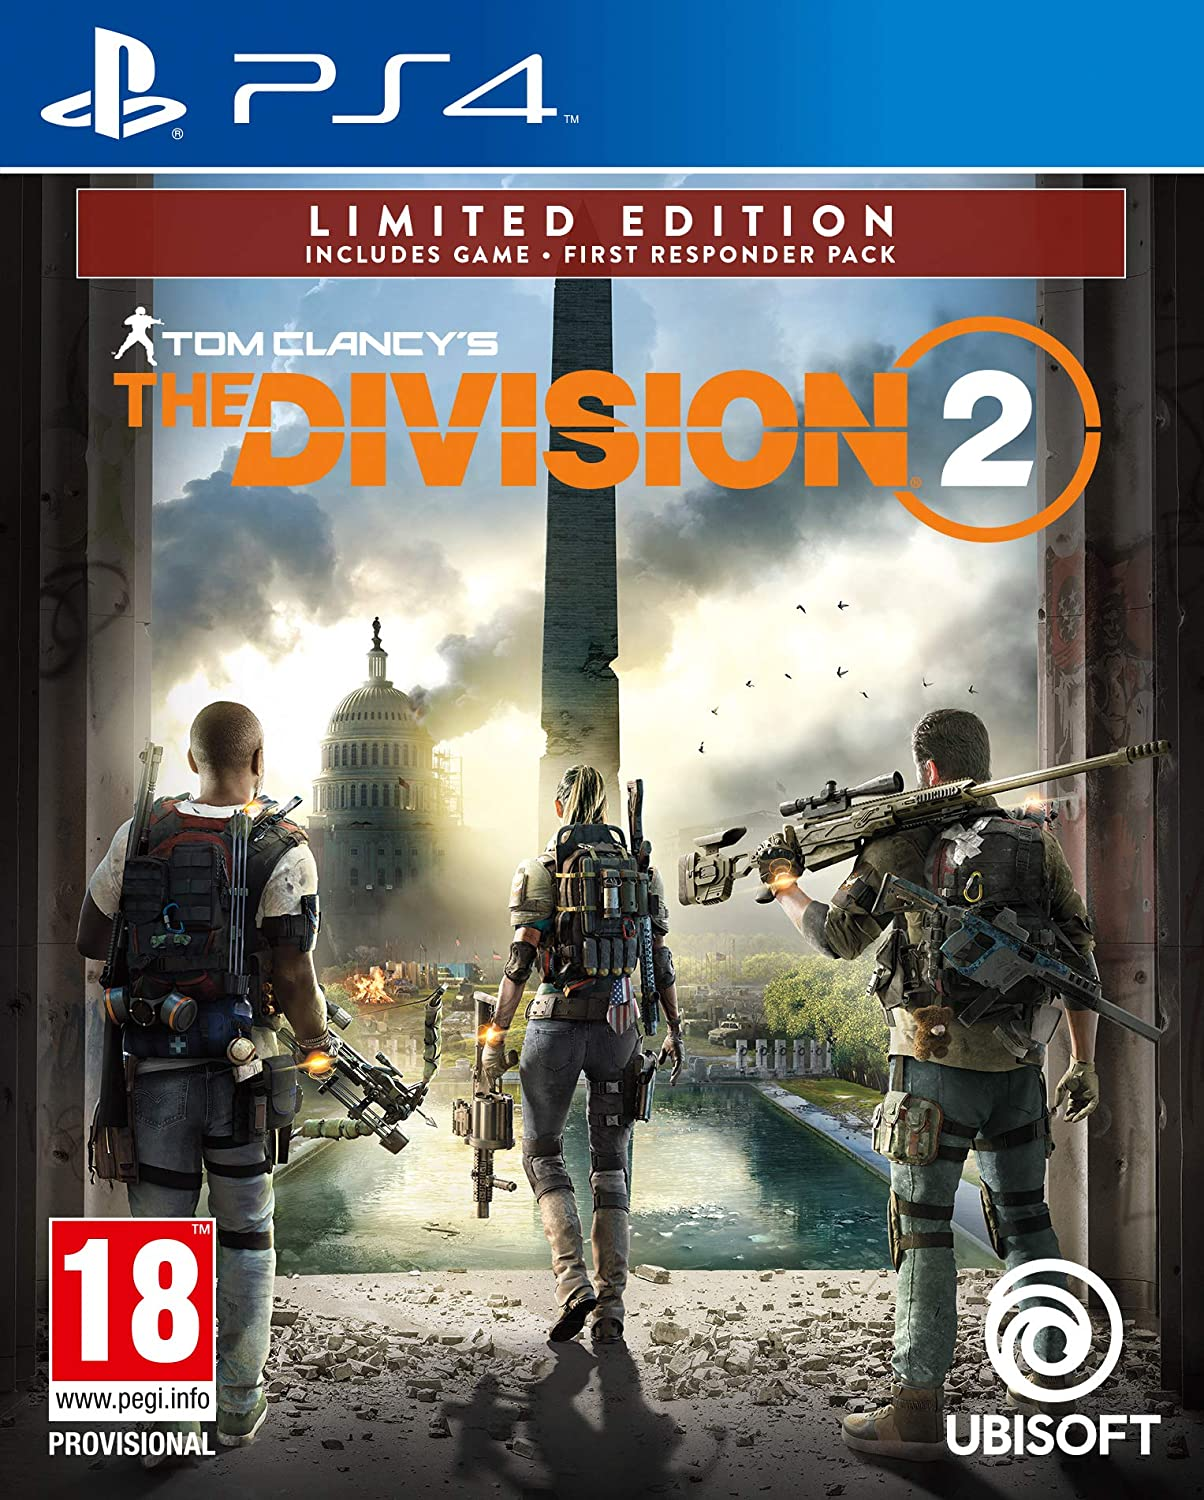 Tom Clancy's The Division 2 Limited Amazon Edition